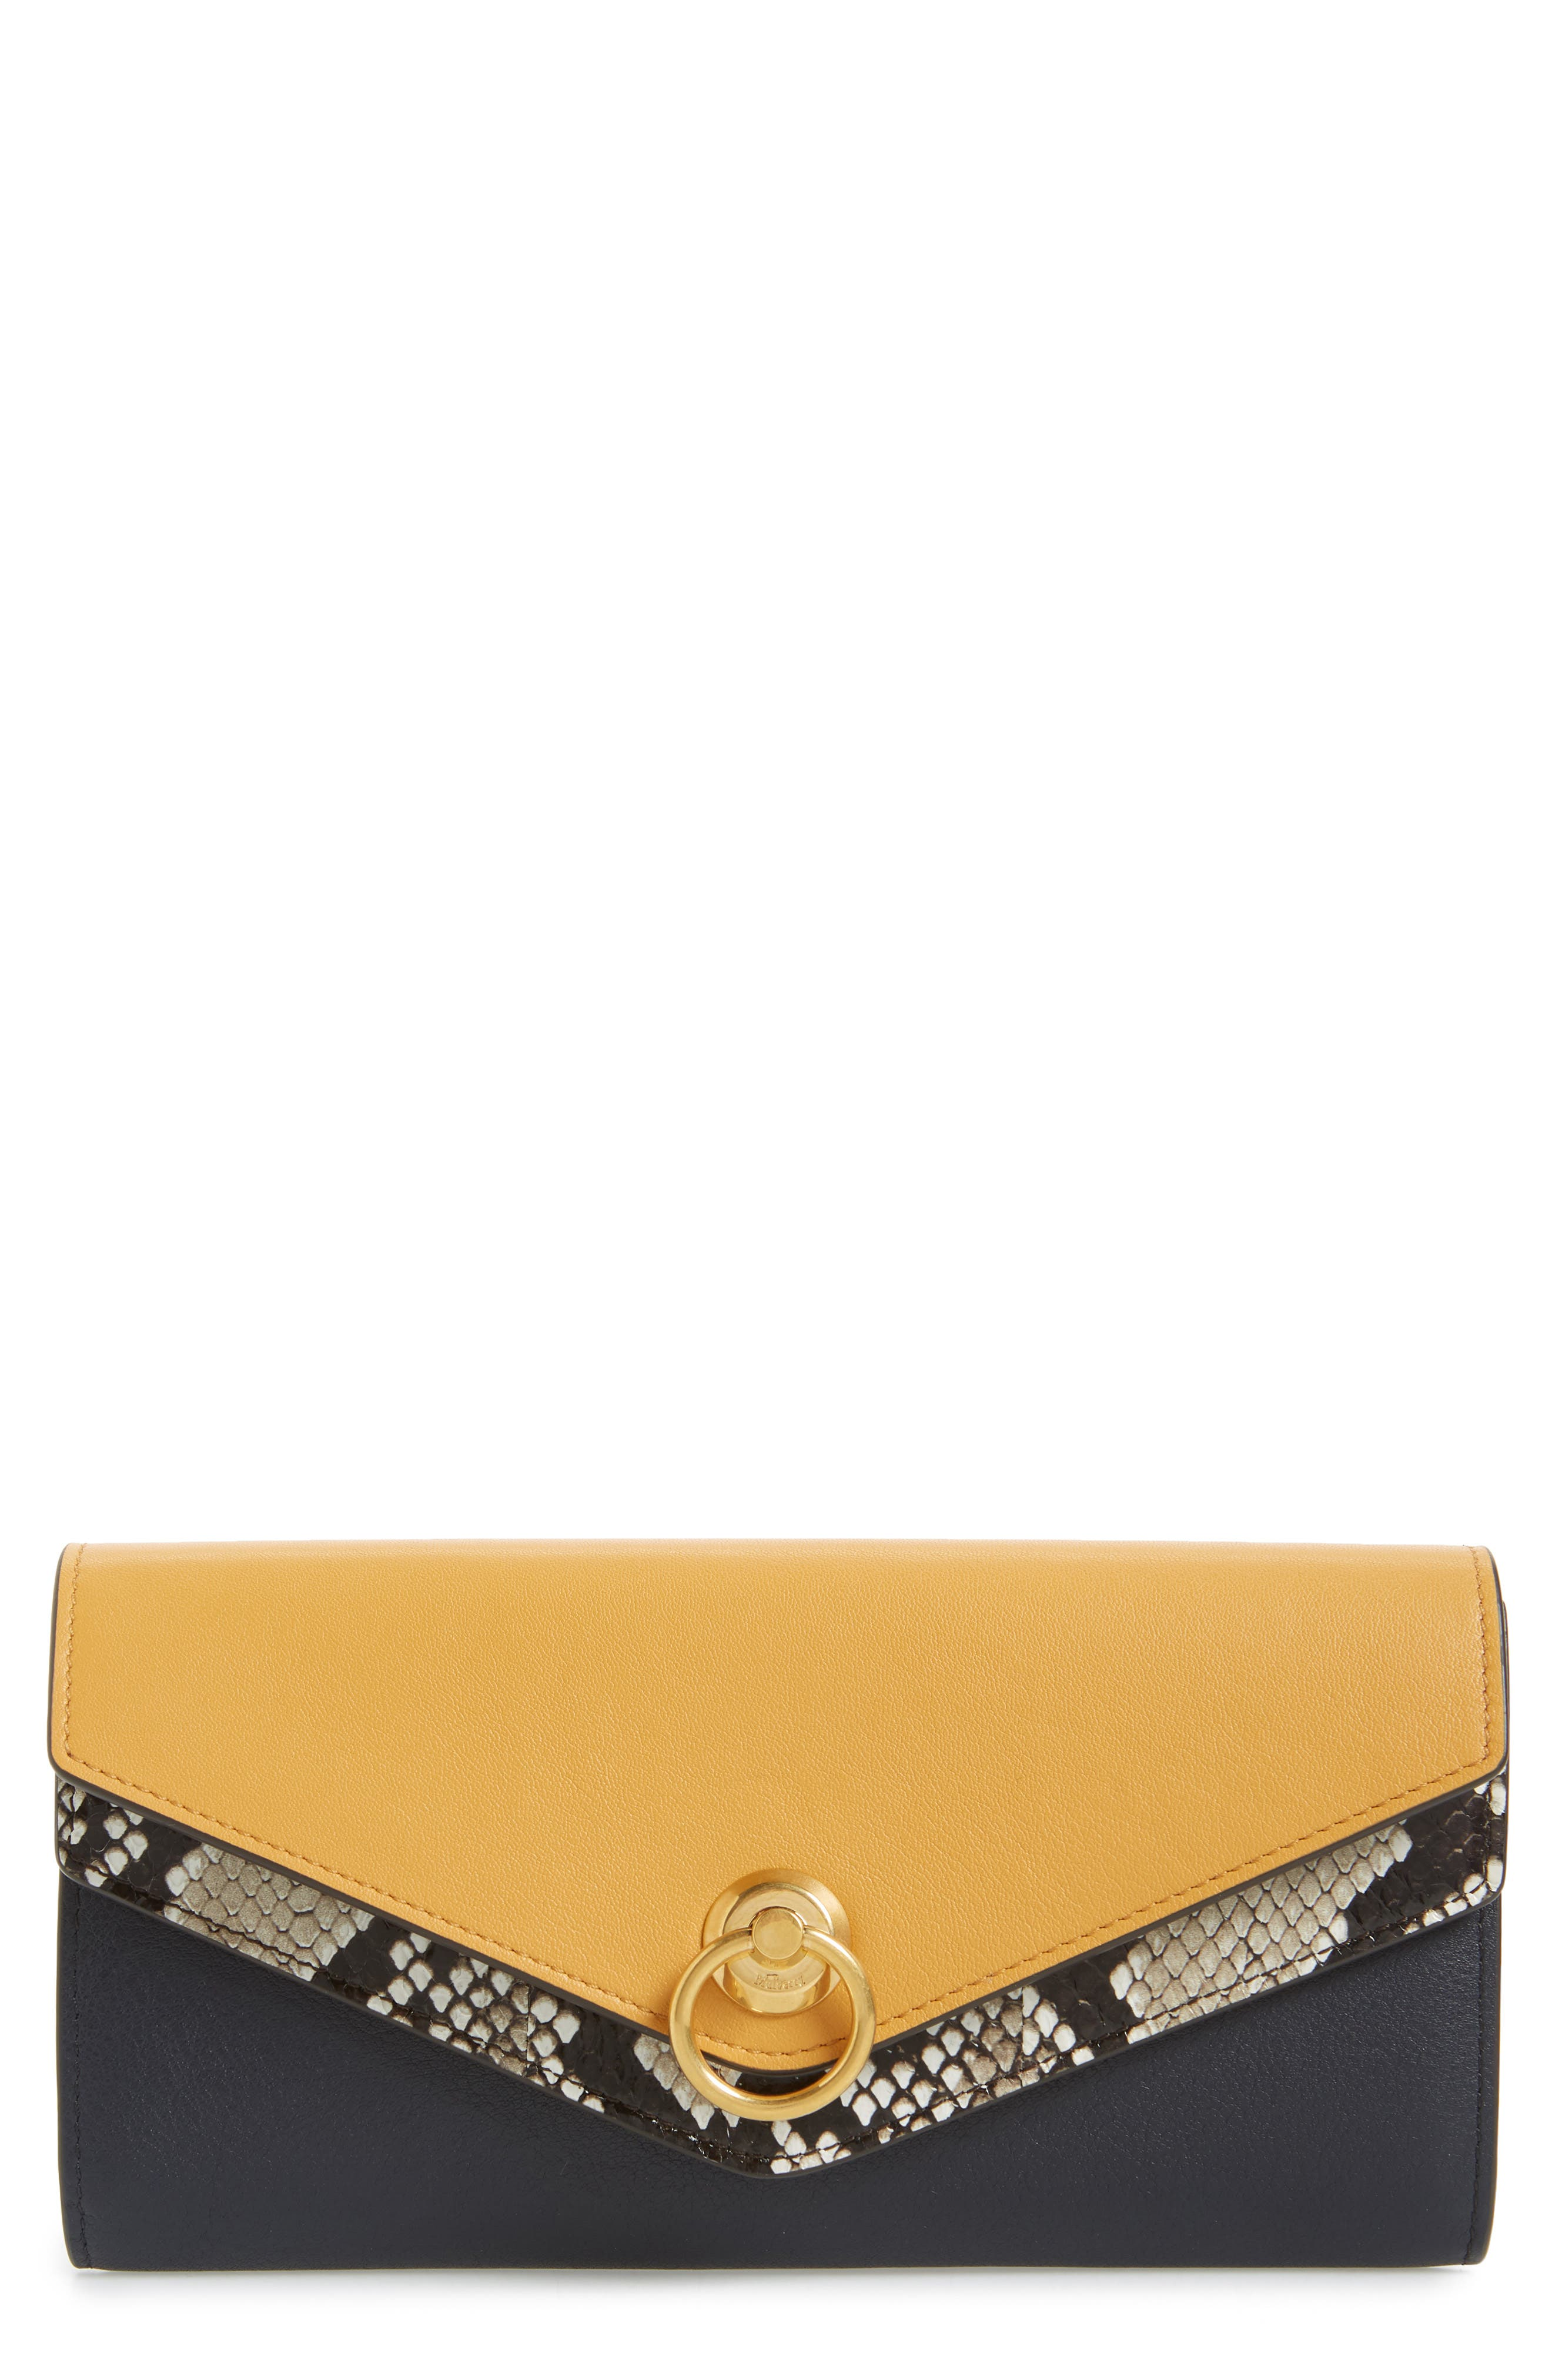 MULBERRY, Mulberrry Harlow Calfskin Leather & Genuine Snakeskin Wallet, Main thumbnail 1, color, MAIZE YELLOW/ MIDNIGHT